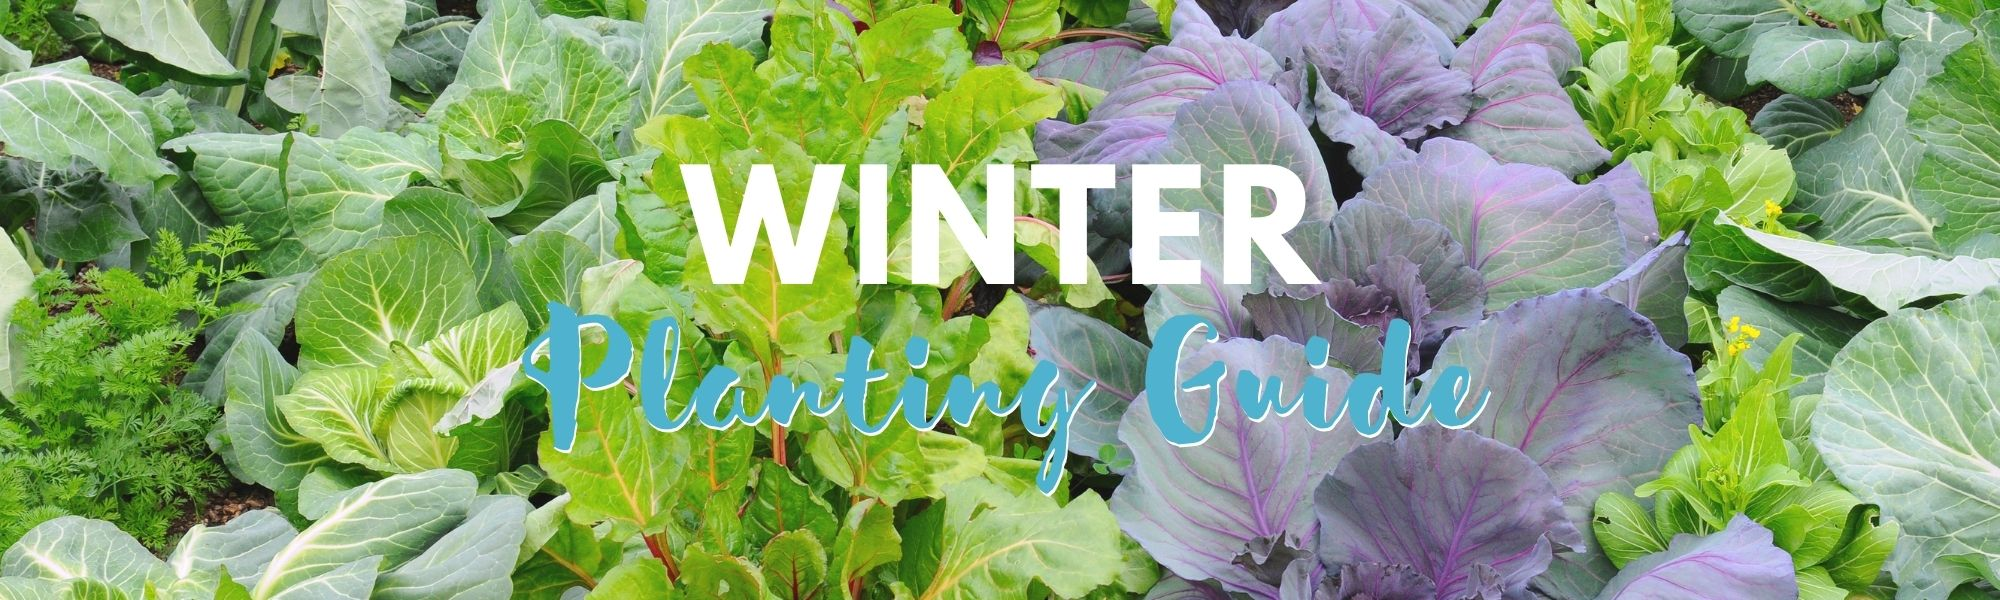 Winter Planning Guide